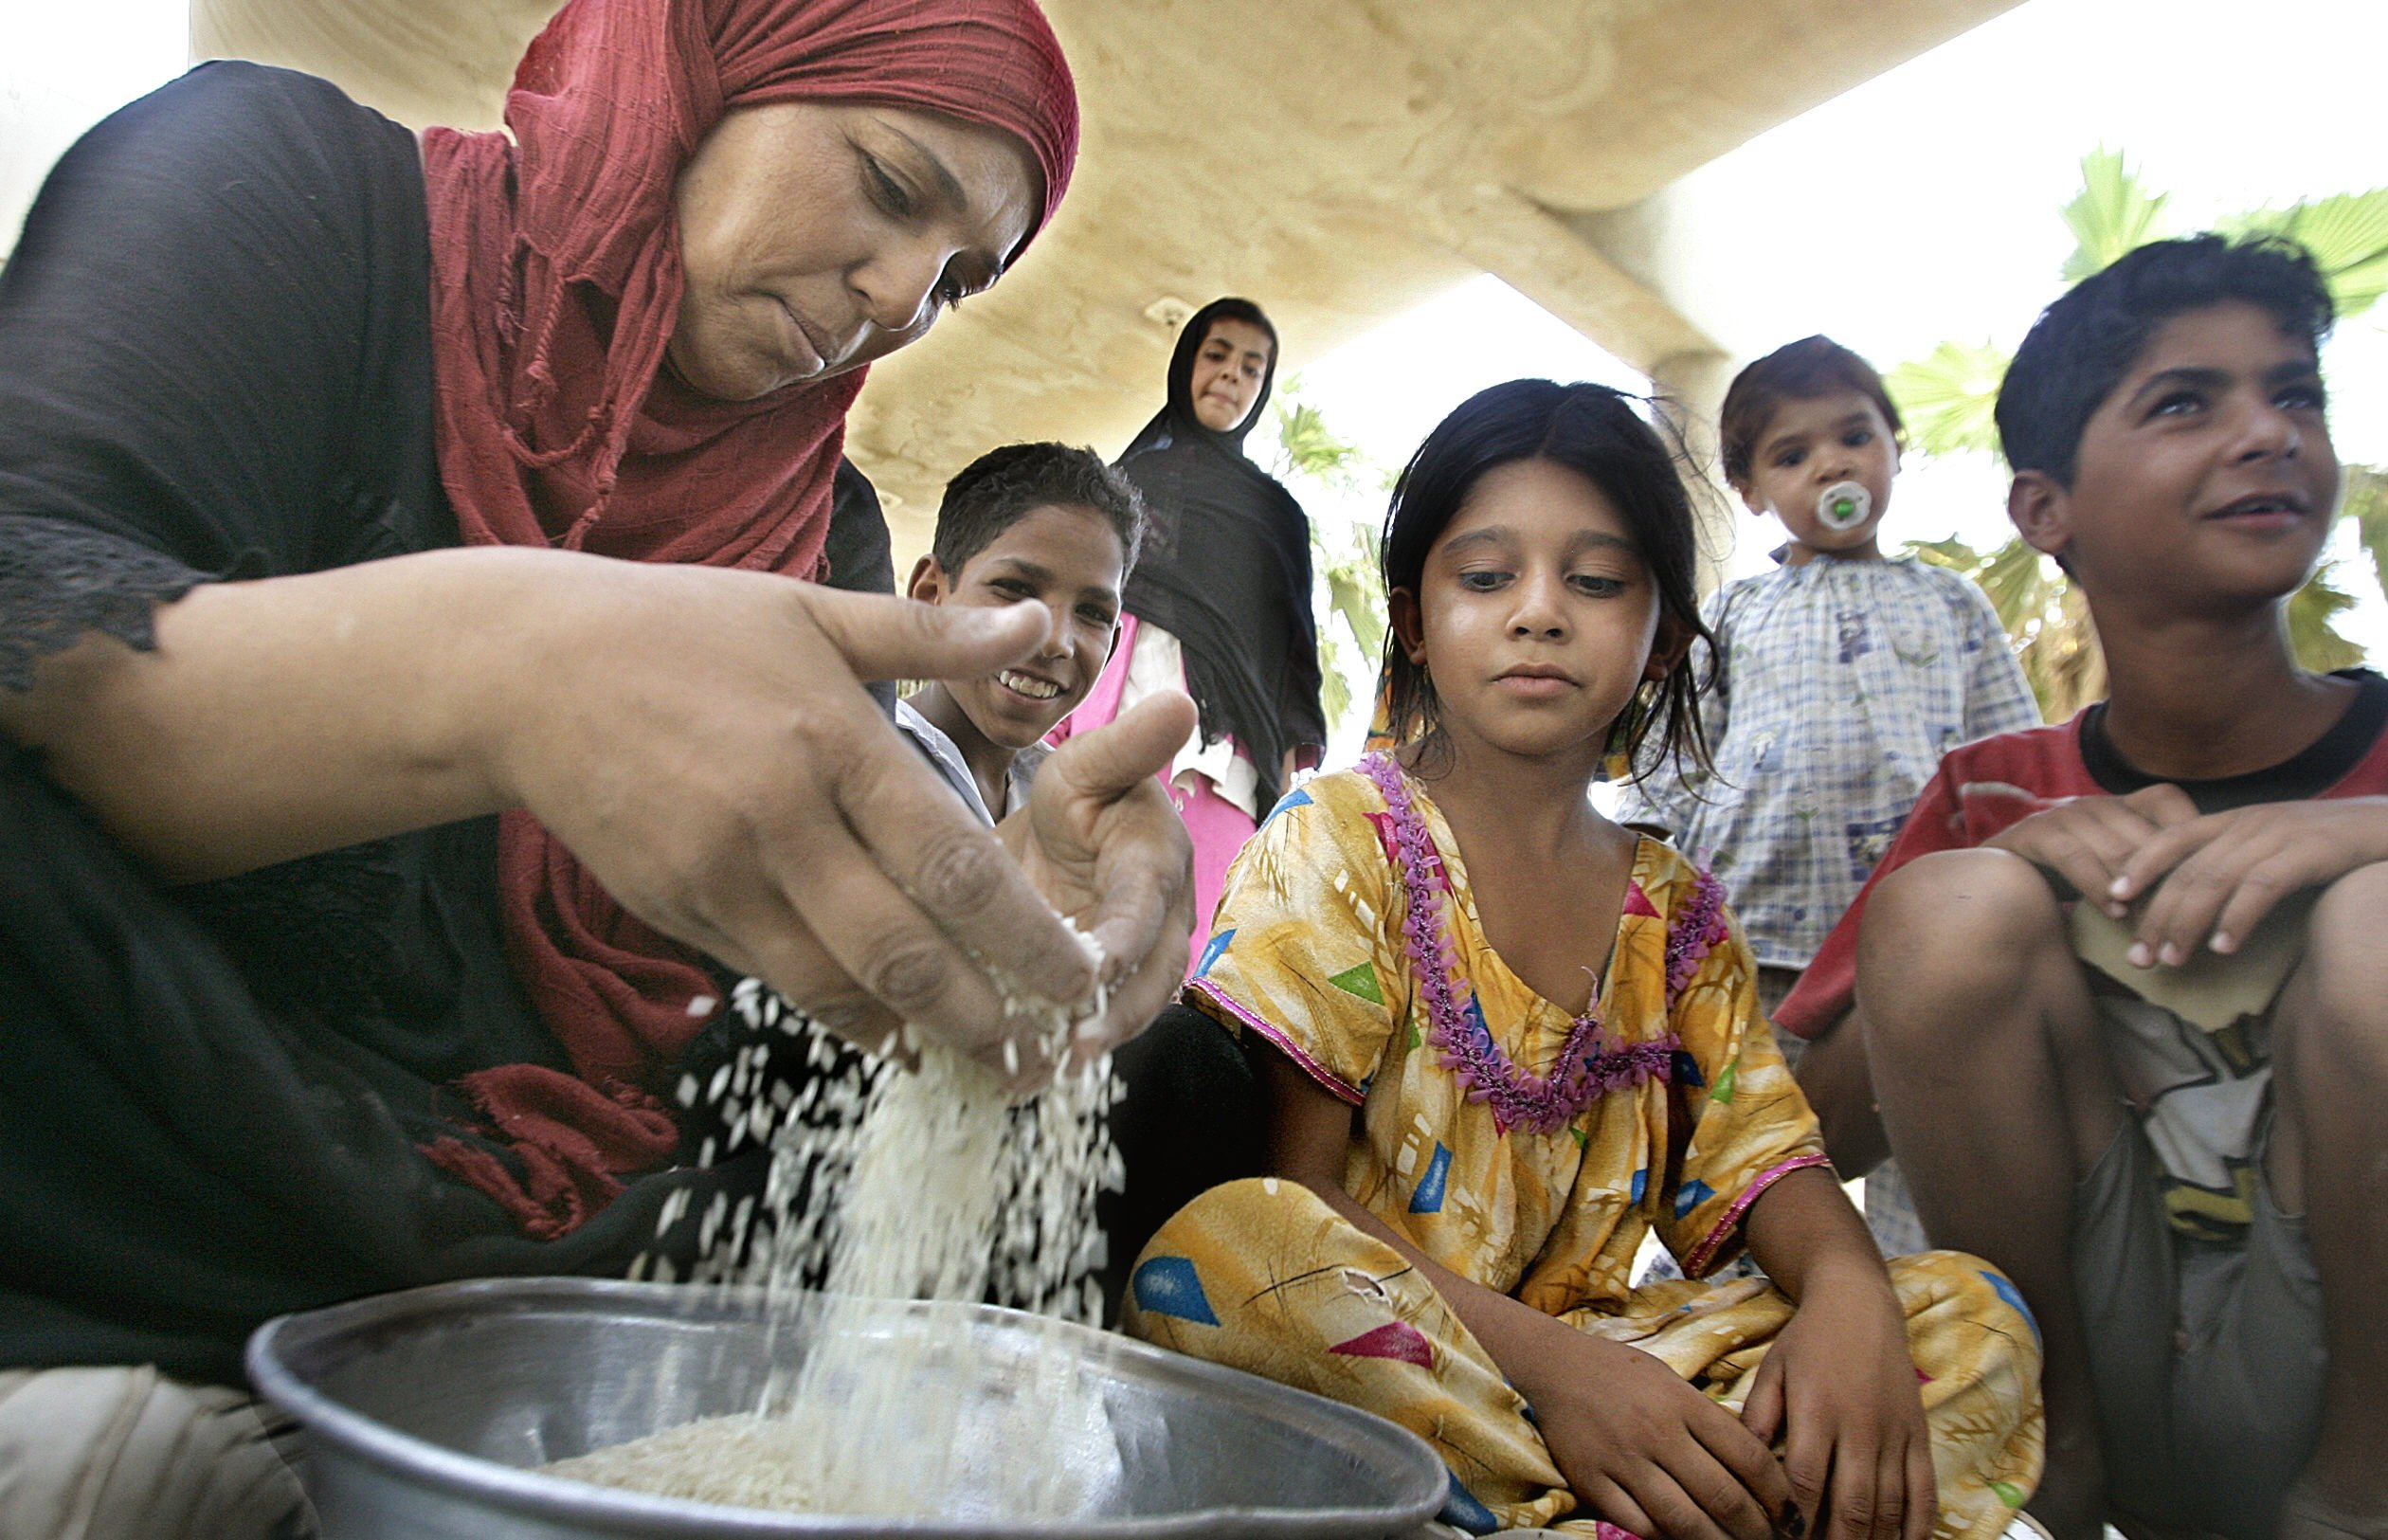 A displaced women prepares food for her children at IDP camp in Baghdad in 2008